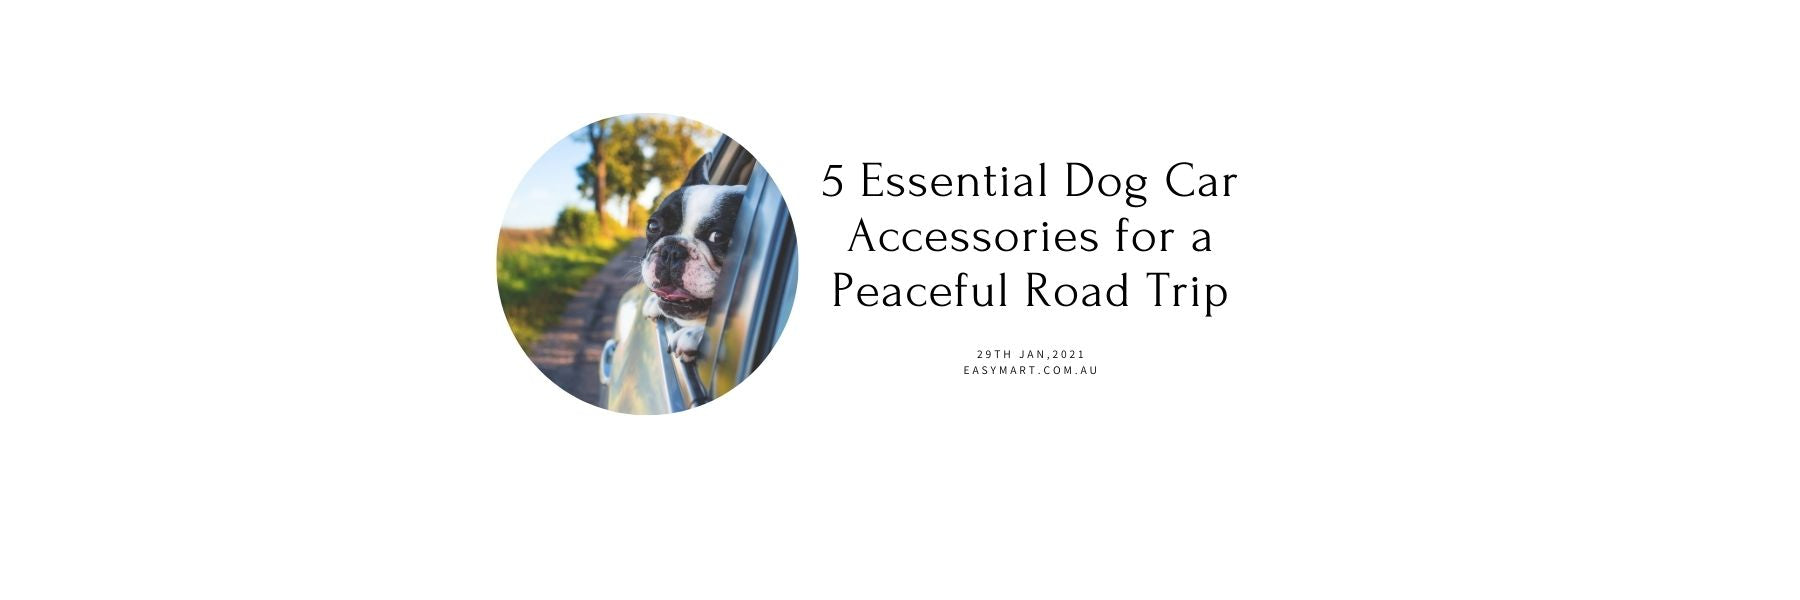 5 Essential Dog Car Accessories for a Peaceful Road Trip